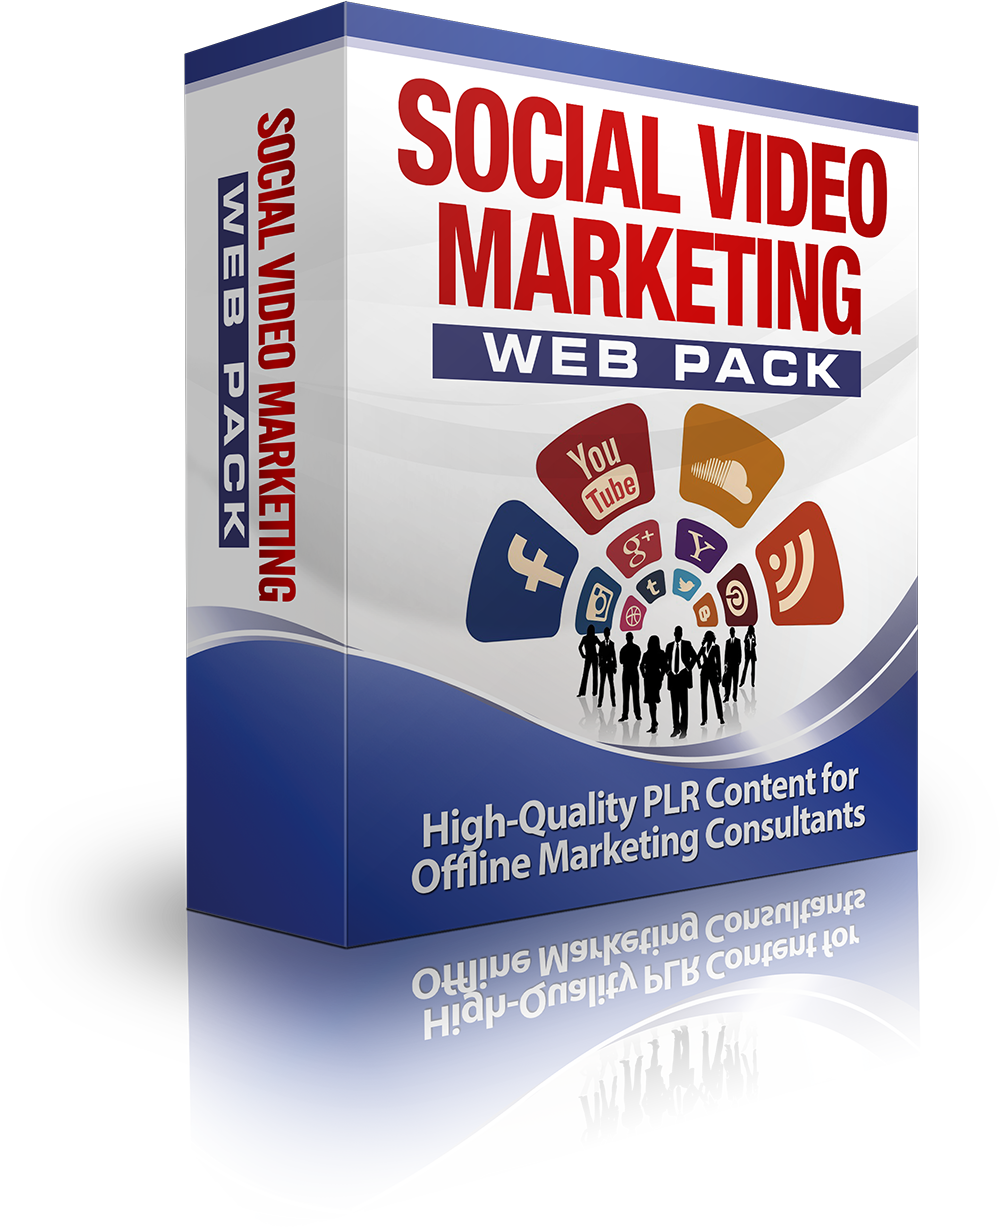 social_video_marketing_plr_pack_02